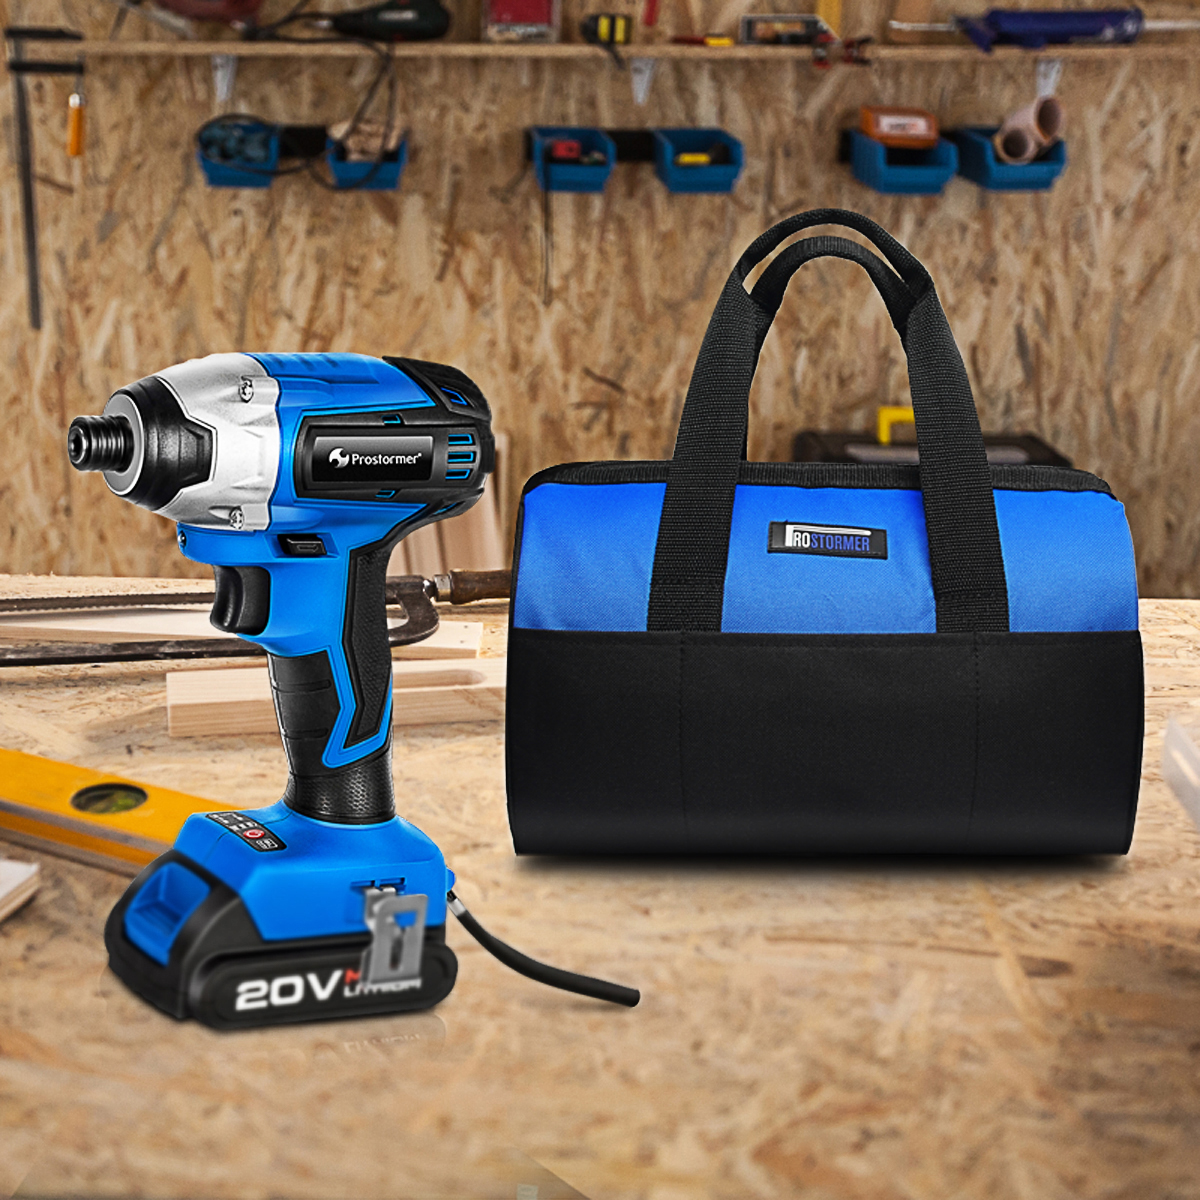 Image 5 - PROSTORMER 20V Electric Screwdriver Brushless Cordless Screwdriver Impact Drill 300NM Tool Bag Variable Speed Rechargeable Drill-in Electric Screwdrivers from Tools on